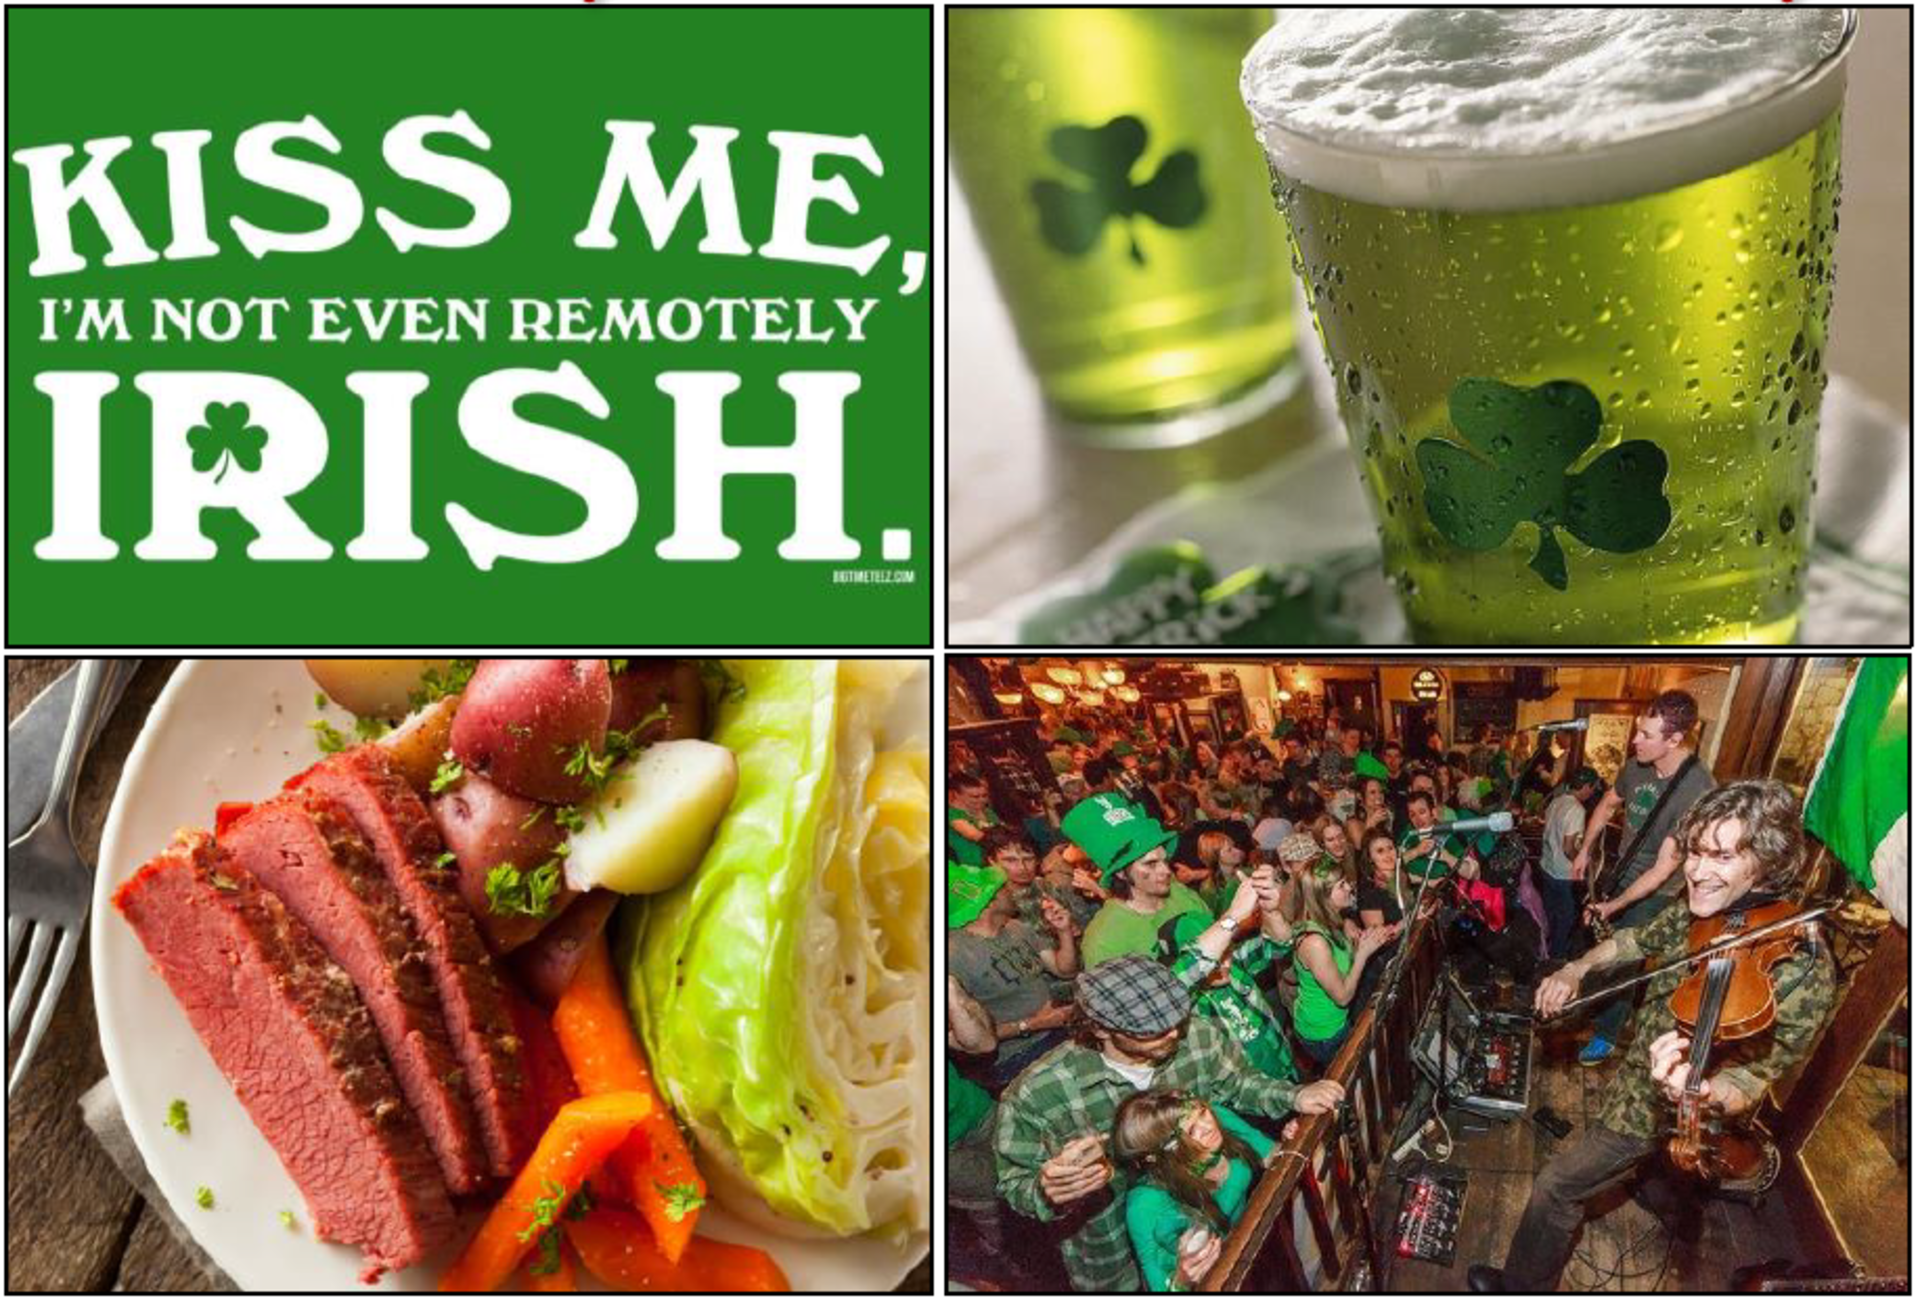 Schulien and Associates' Weekend Guide: (Mar 16-18) SPECIAL ST. PATTY's DAY EDITION!